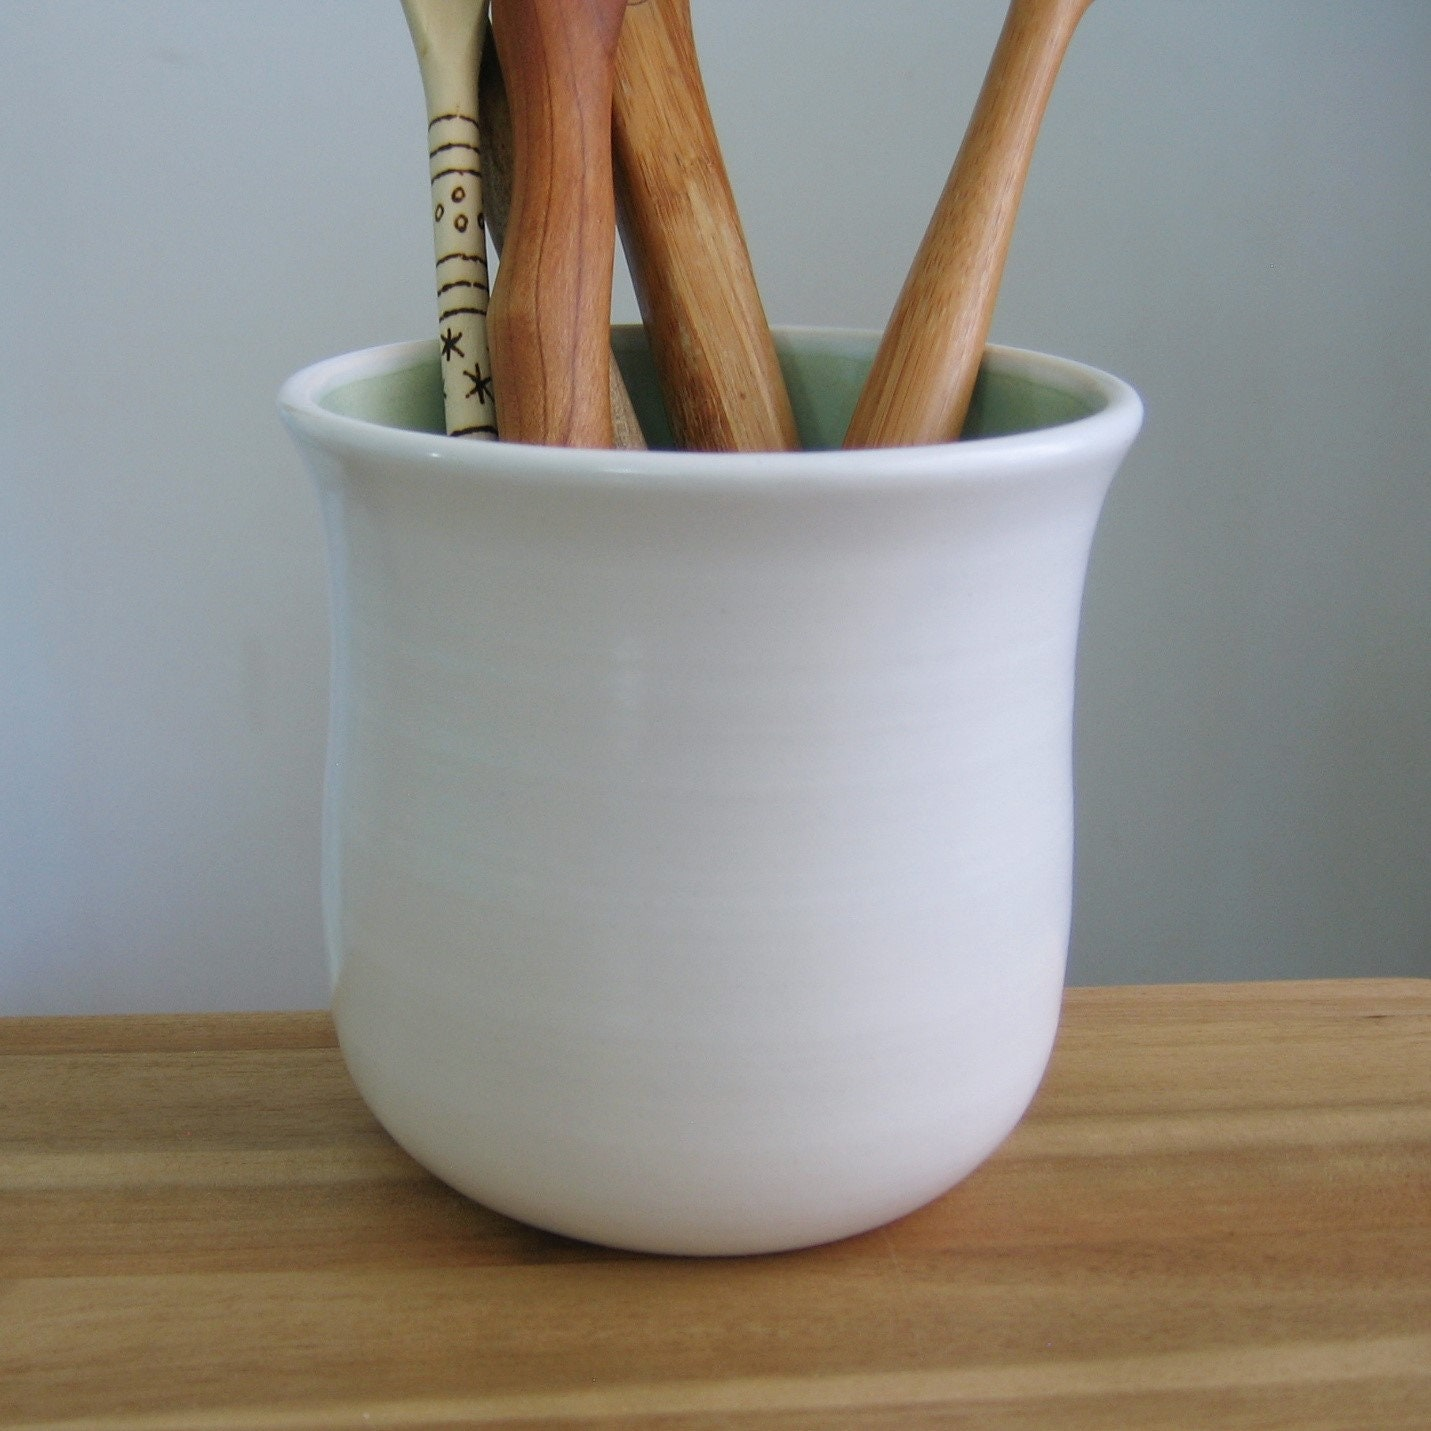 Utensil Crock Kitchen Storage Ceramic Utensil Holder Hand